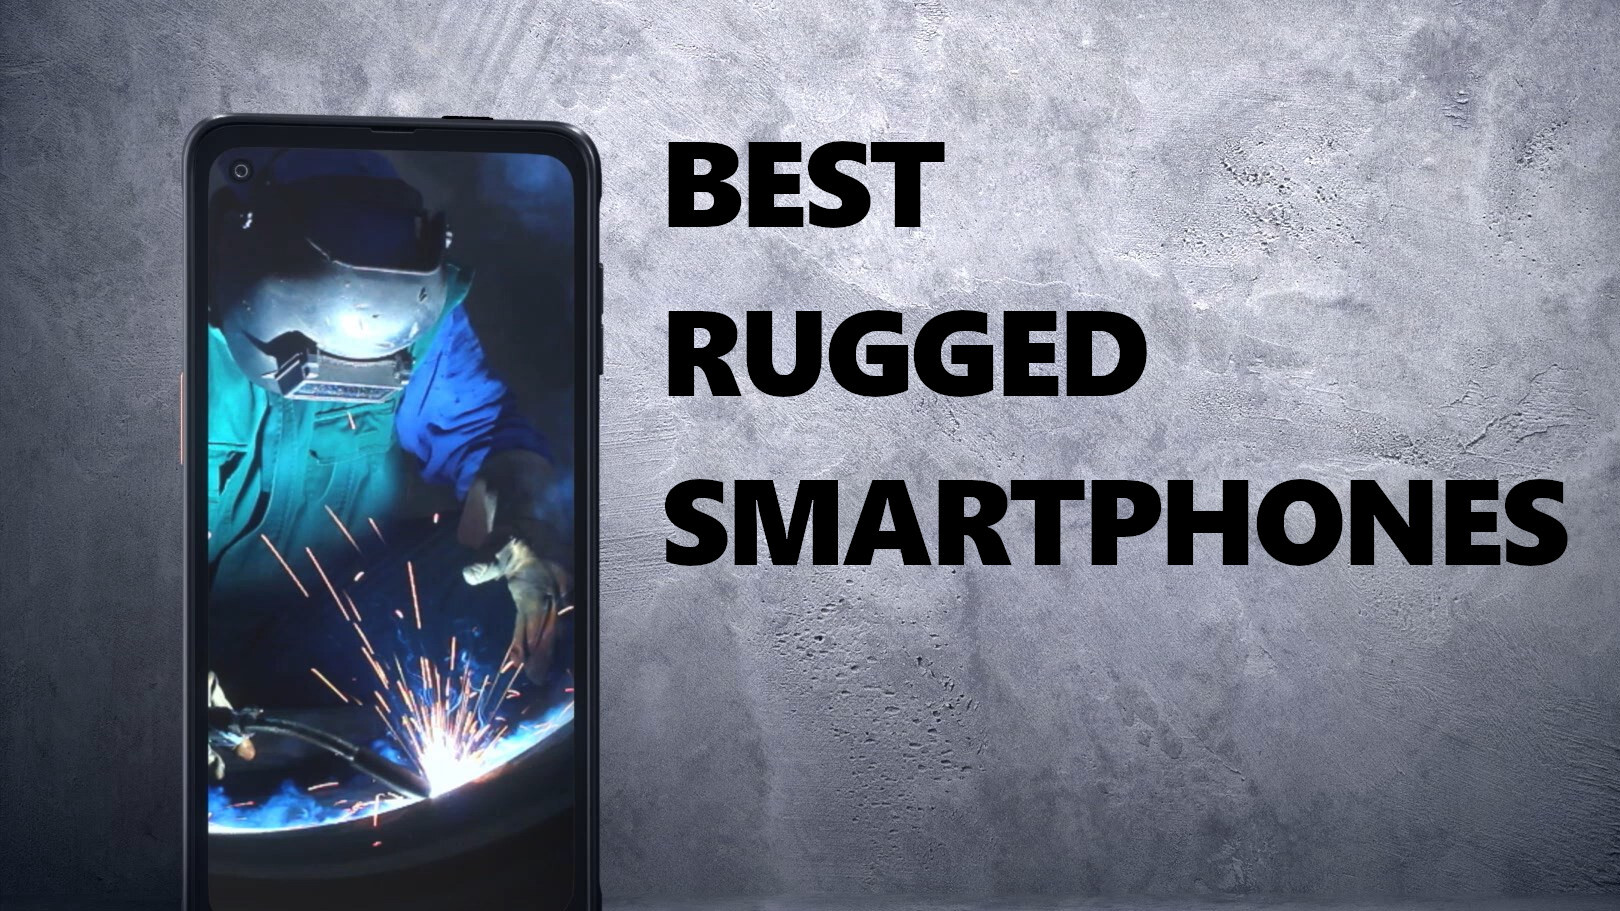 Best Rugged Most Durable Smartphones 2018